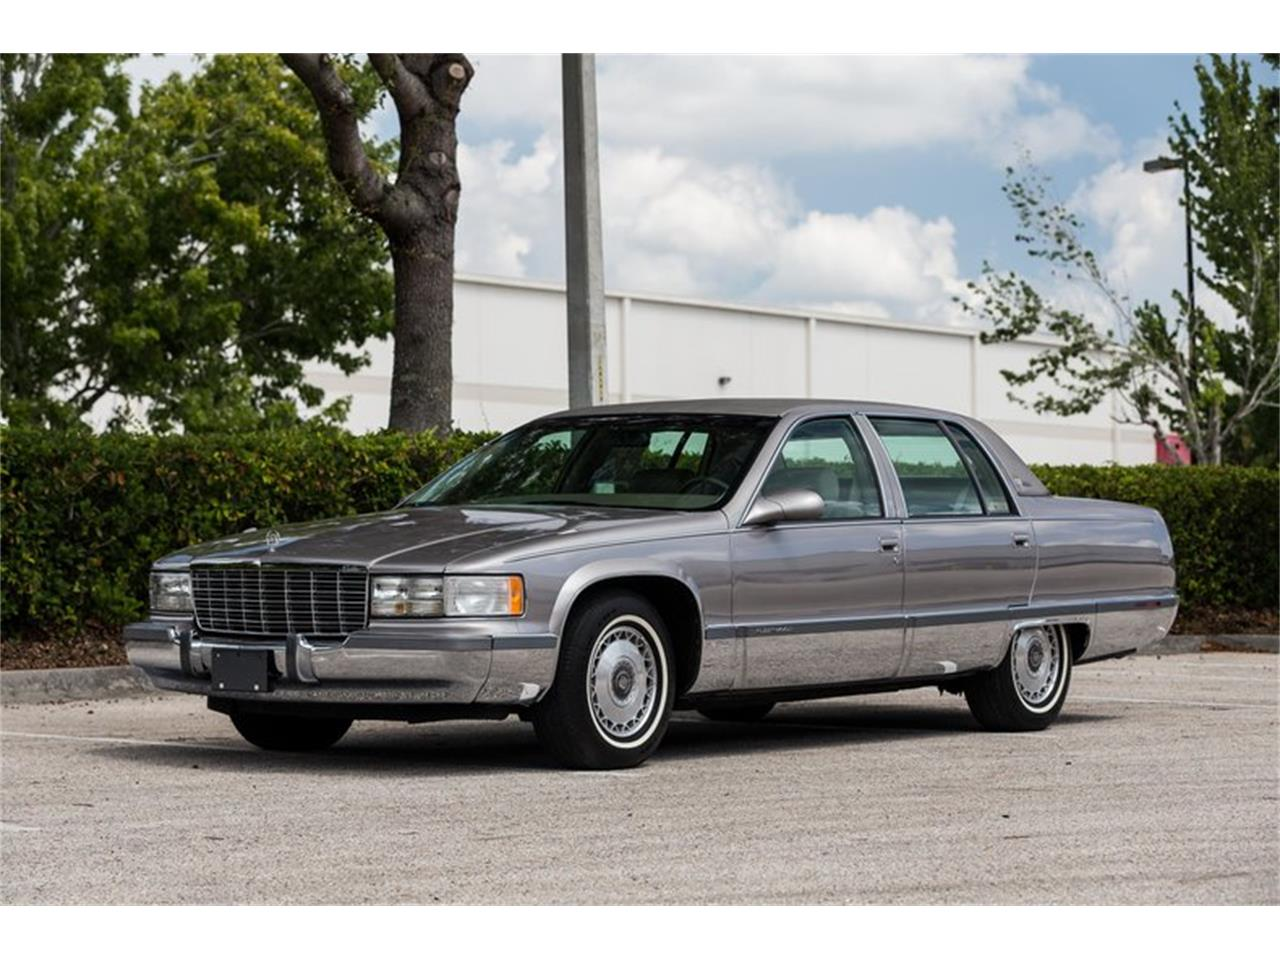 Large Picture of '96 Cadillac Fleetwood located in Florida - $32,900.00 - Q8PS